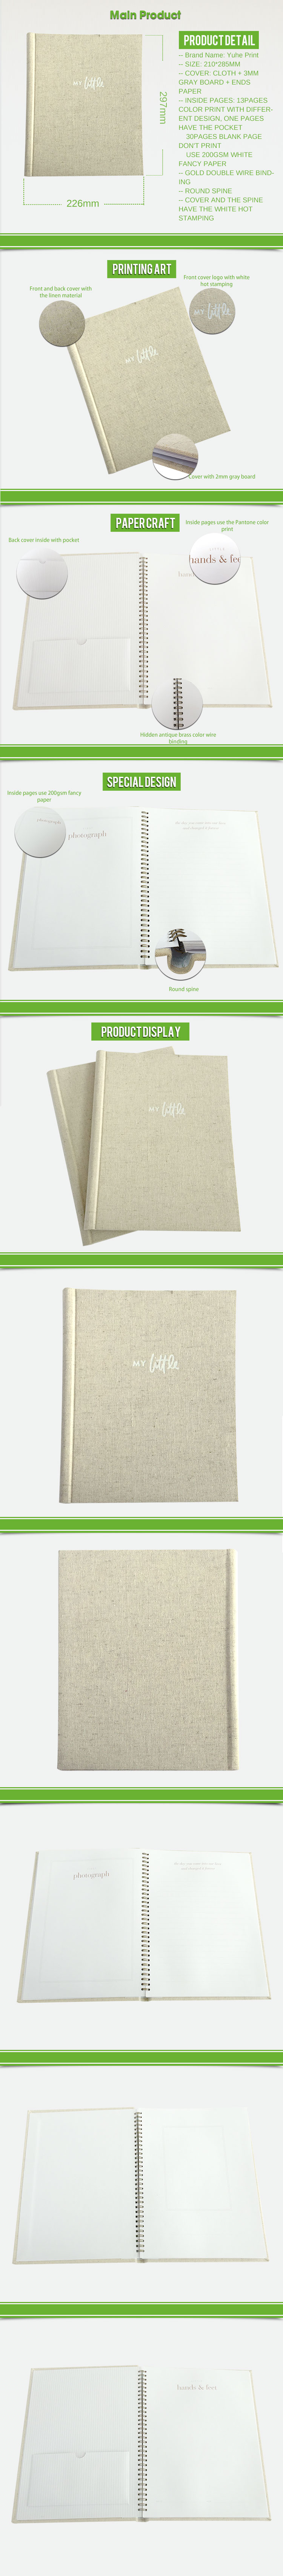 With perforation 4C/4C customized China supplier Lay flat spiral binding baby photo alum book bulk cheap price print